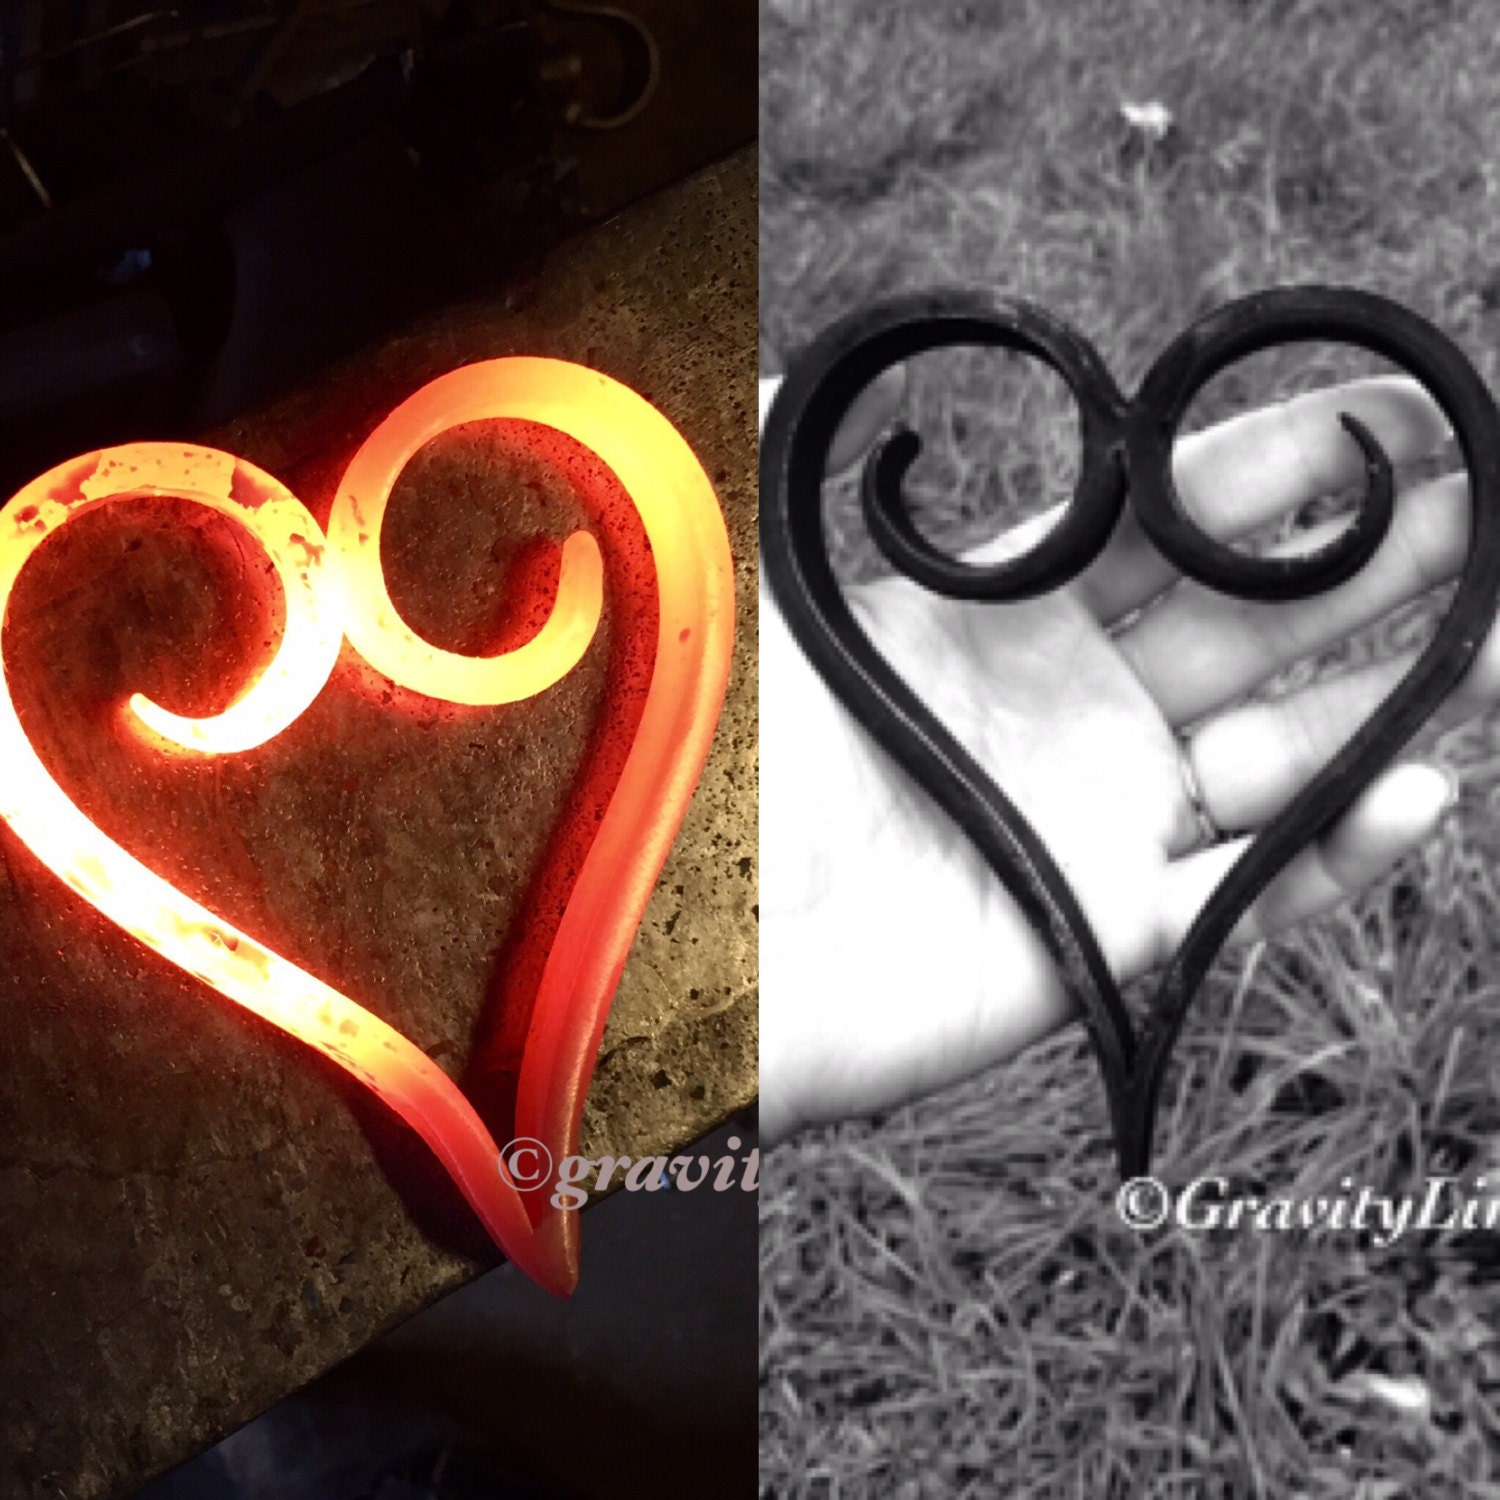 gift for wedding anniversary 6th wedding anniversary gift iron forged heart trivet 6th anniversary gift iron anniversary gift mothers day gift 6th wedding anniversary 6th anniversary kitchen